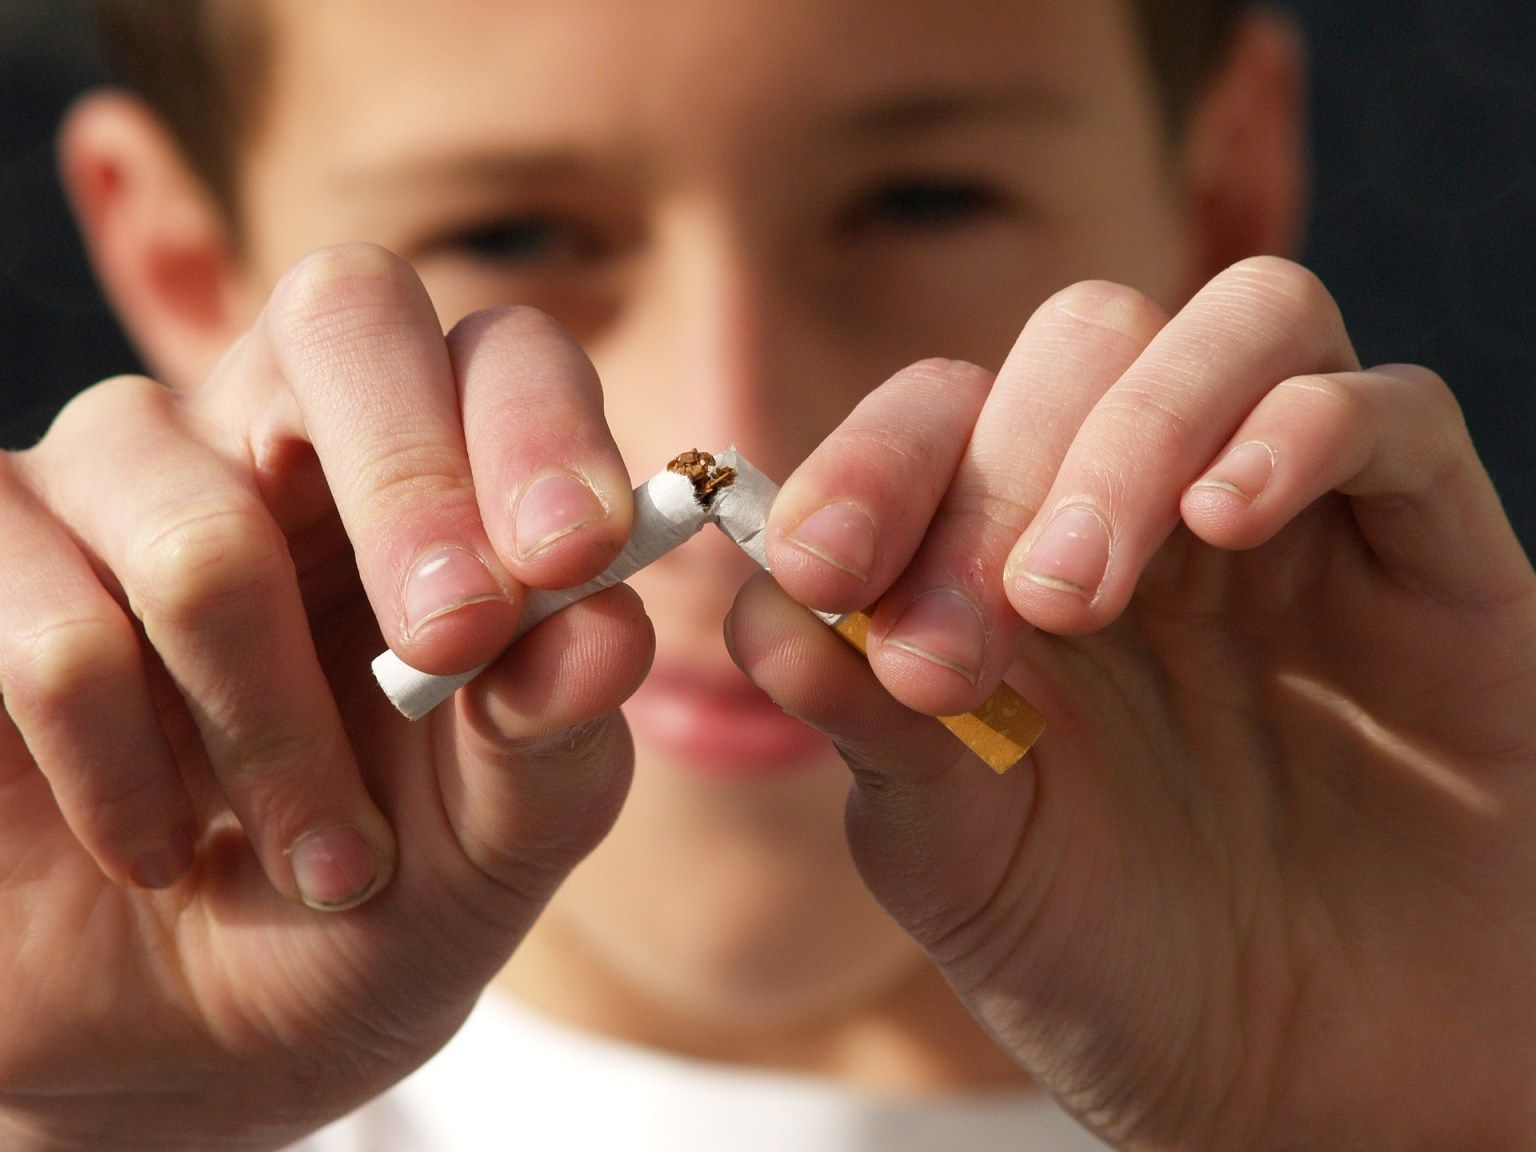 How to Stop Smoking in 8 Easy Tips